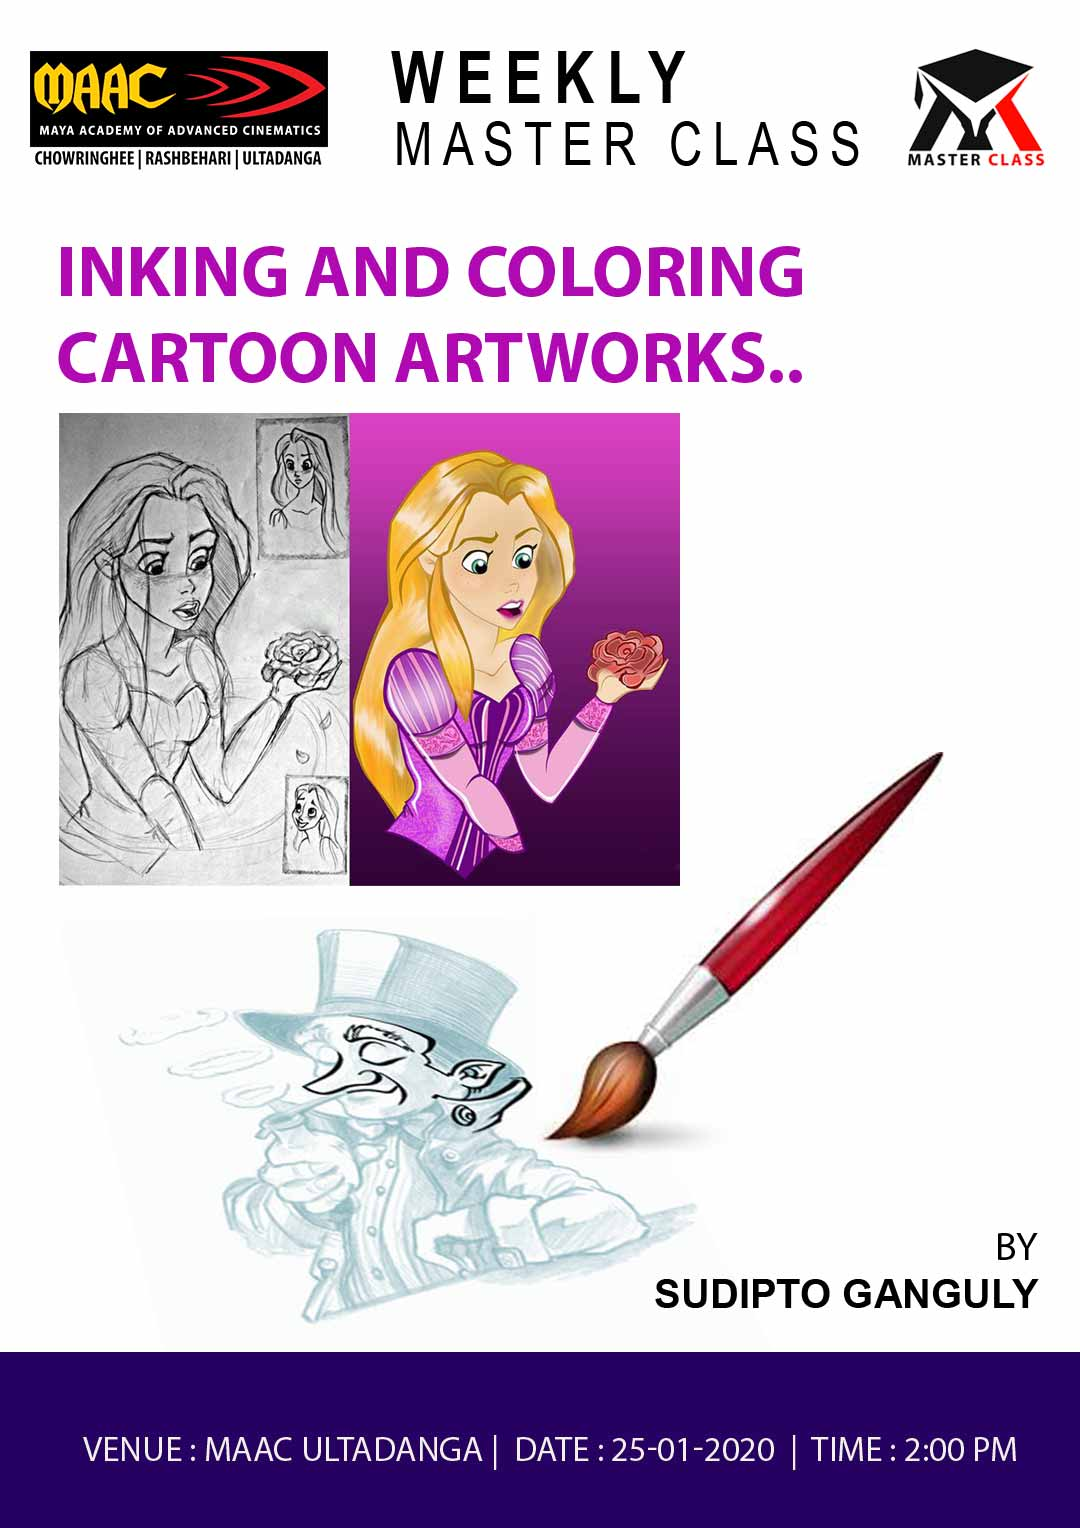 Weekly Master Class on Inking  & Coloring Cartoon Artworks